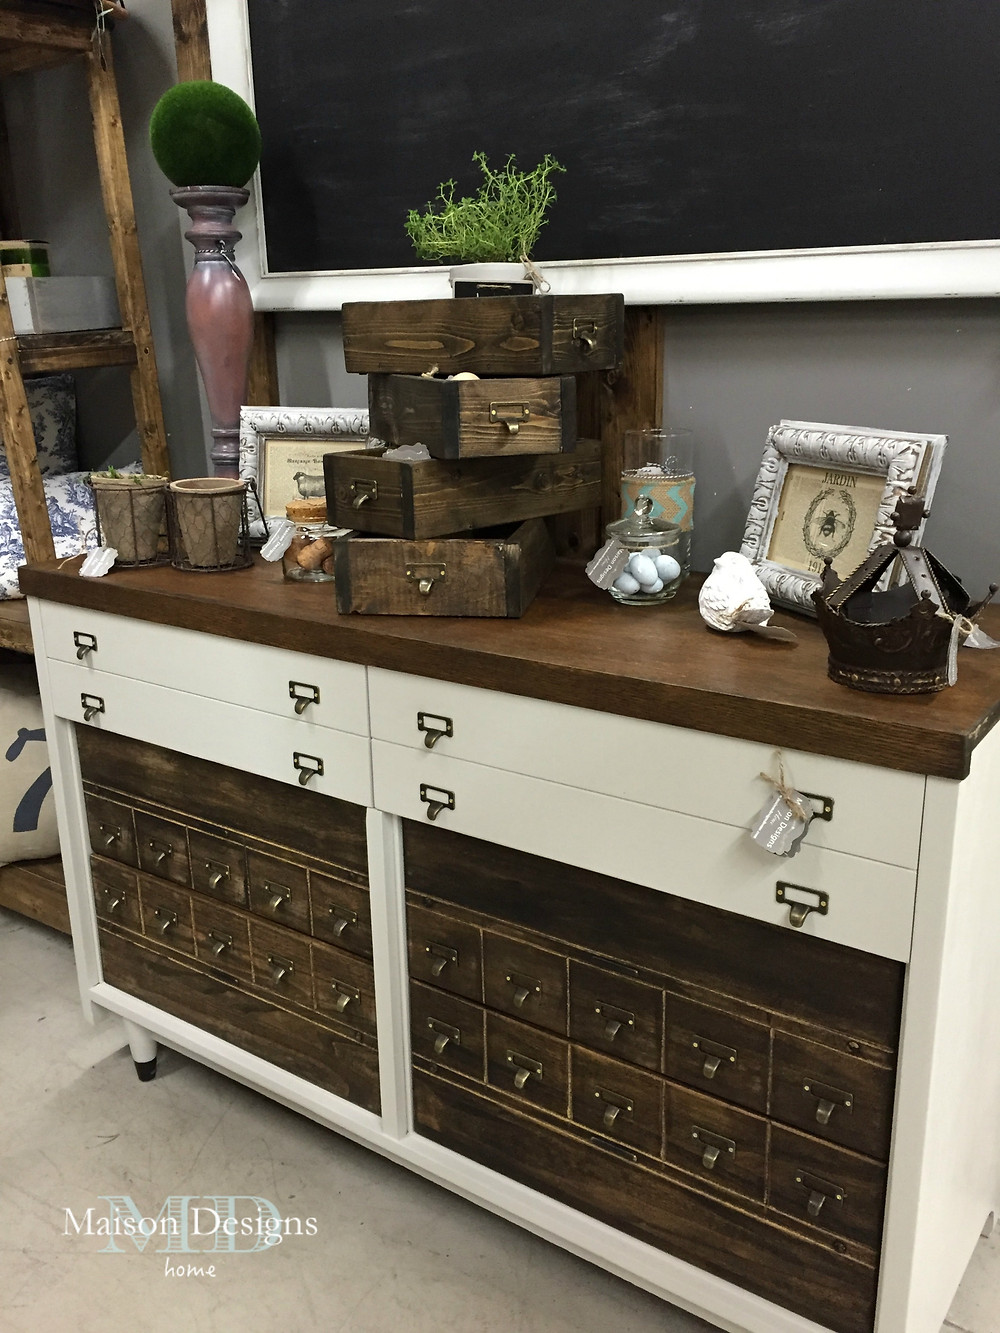 Apothecary Cabinet ~ Maison Designs Home